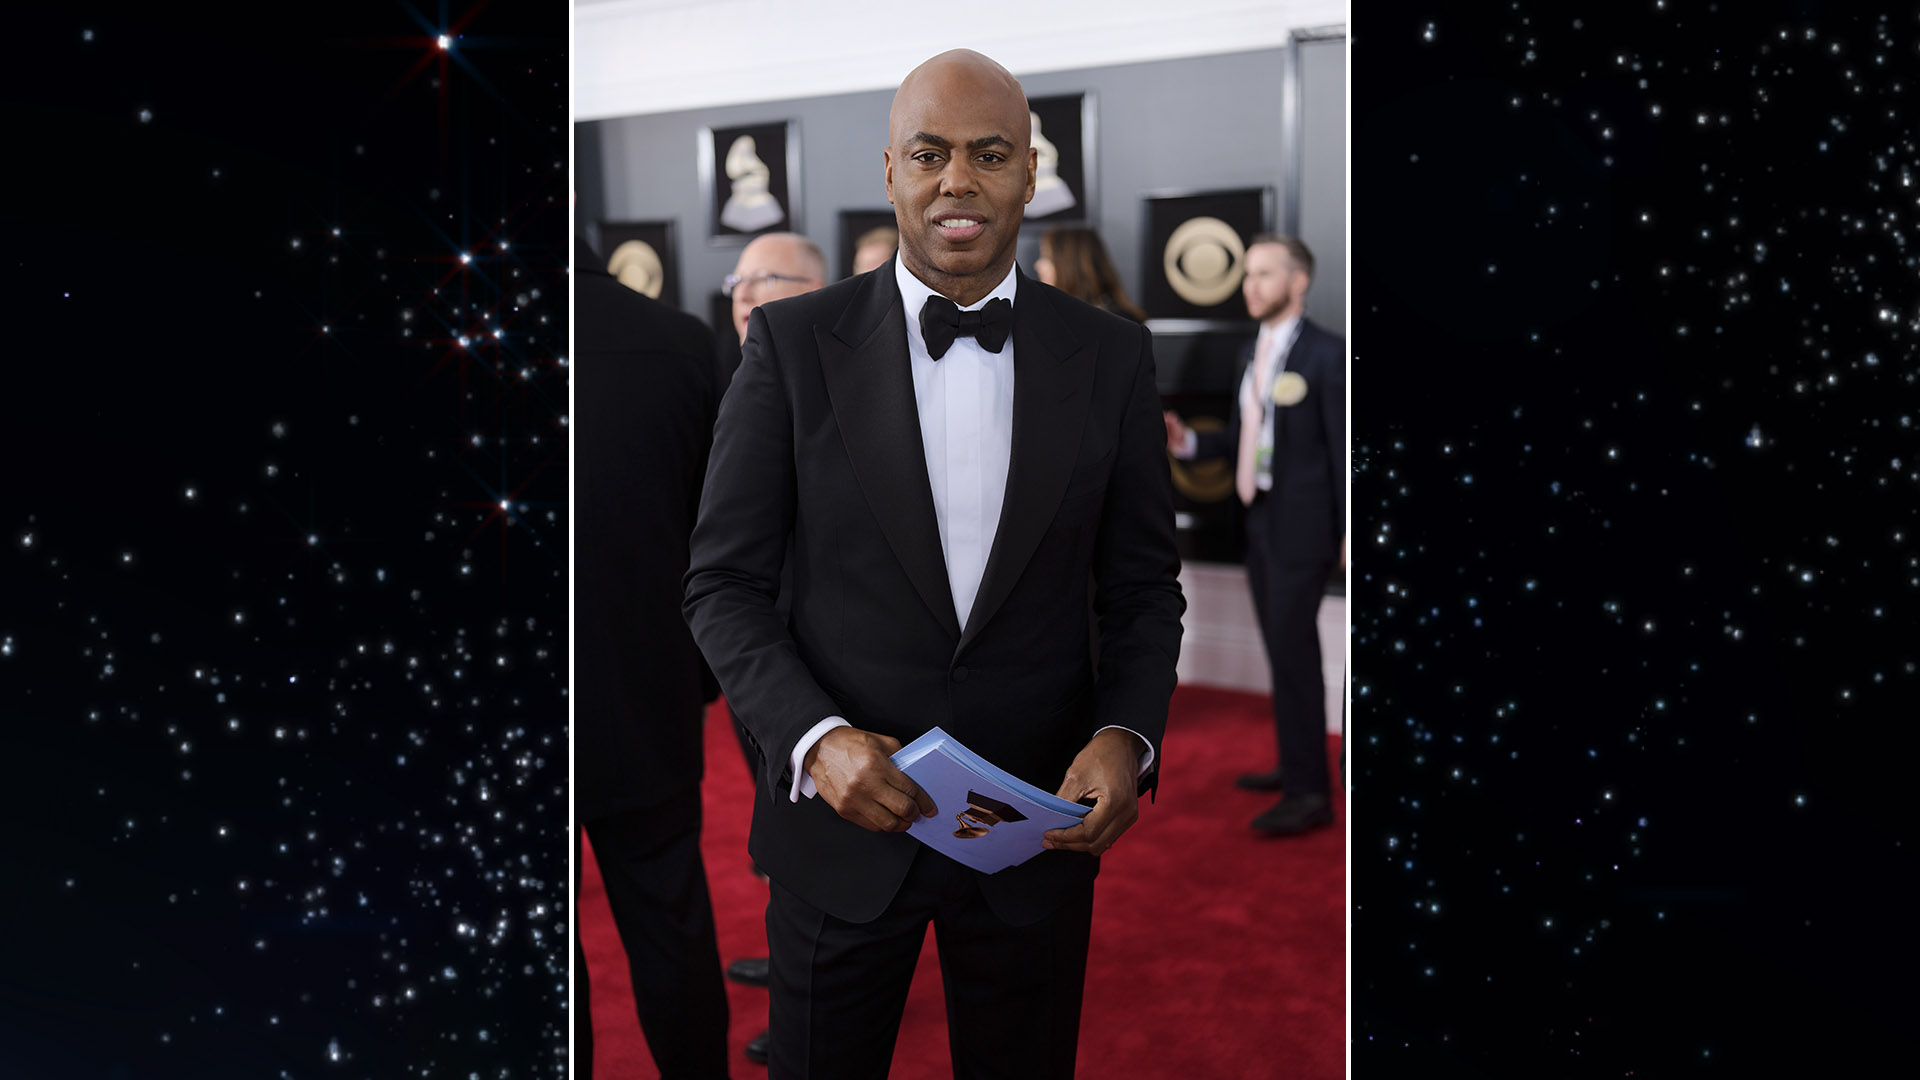 Entertainment Tonight host Kevin Frazier preps for a stream of interviews on the 60th Annual GRAMMY Awards red carpet.